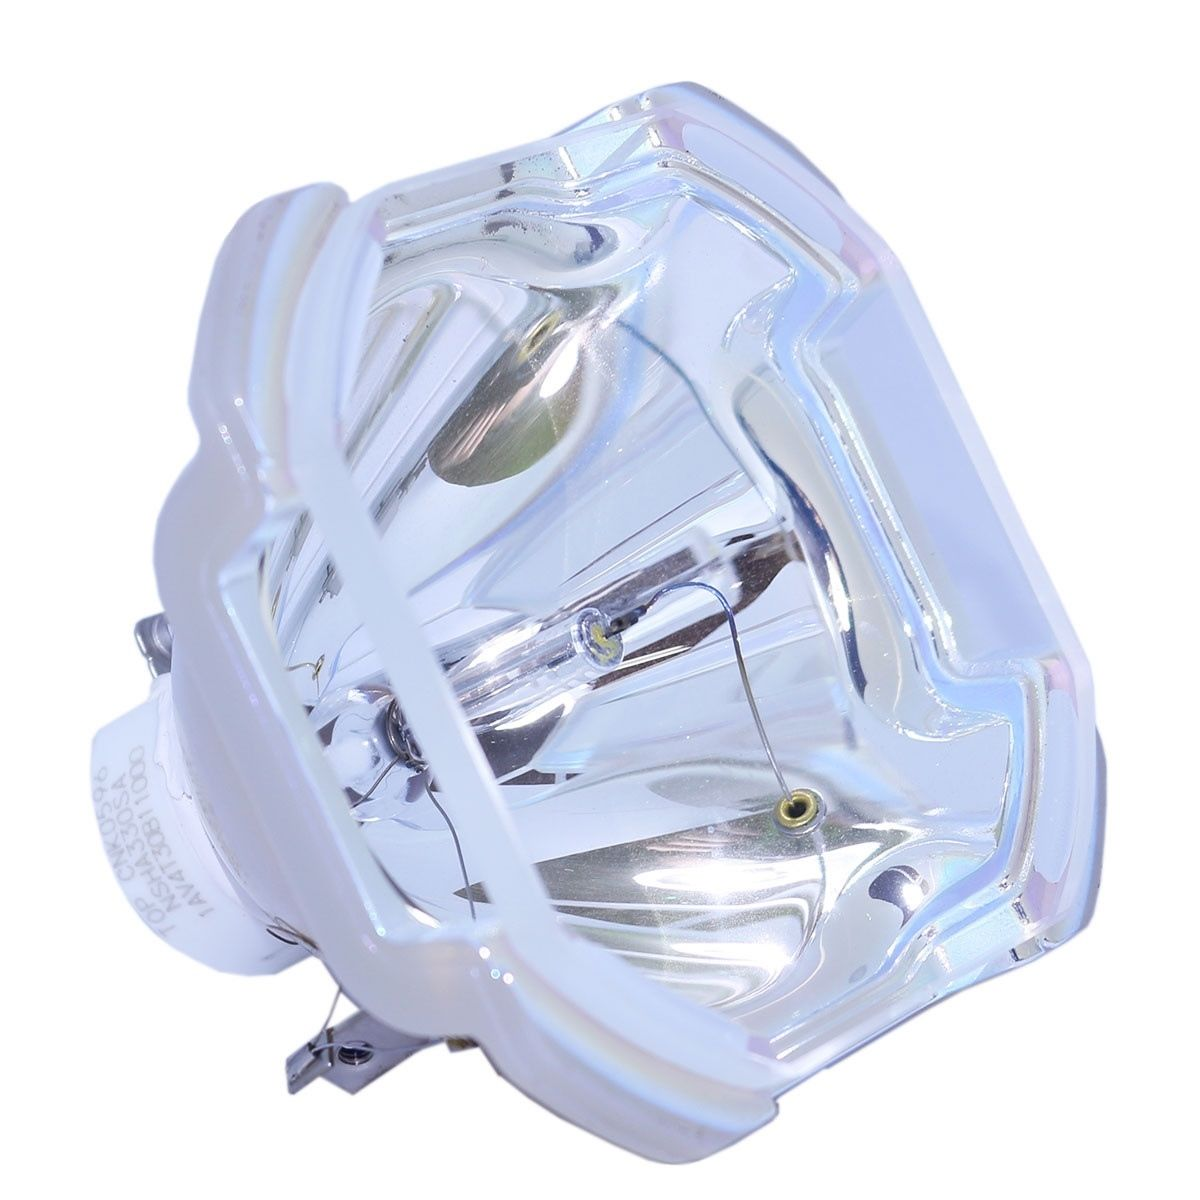 Compatible Bare Bulb 003-120377-01 for CHRISTIE LX500 Projector Lamp Bulb without housing brand new stiletto high heels sandals gladiator women sexy platform rome style shoes summer ladies open toe buckle pumps fashion